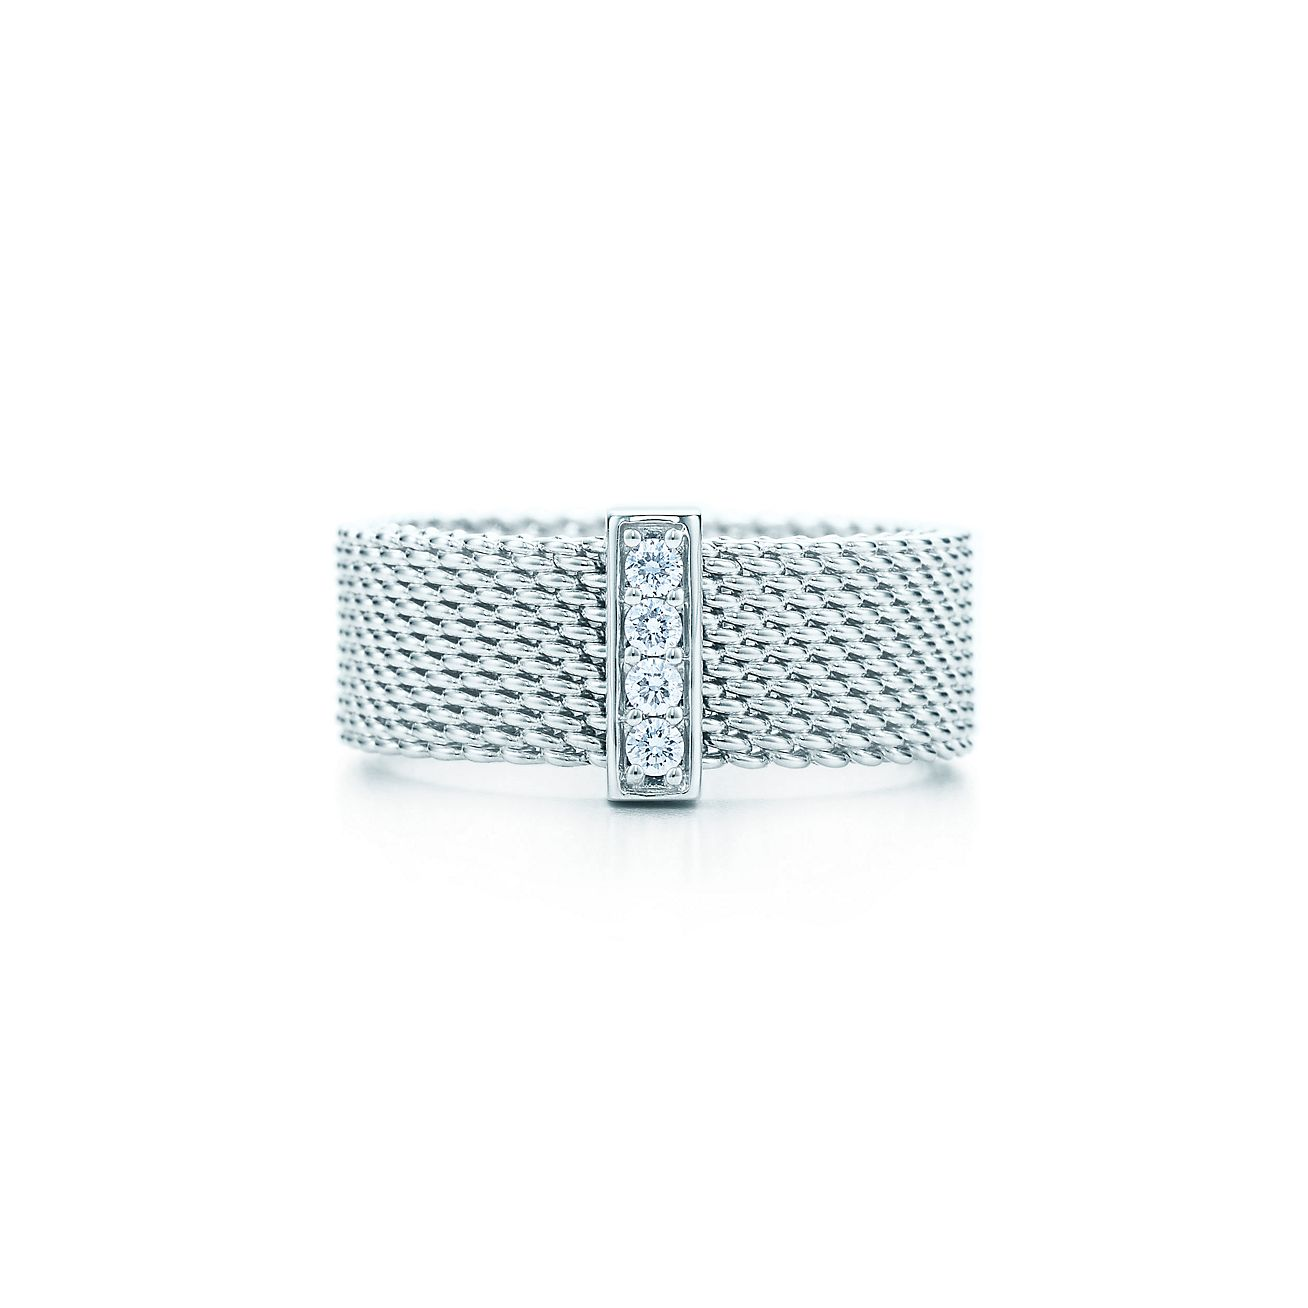 Tiffany & Co. has been the world's premier jeweller and America's house of design since Shop creations of timeless beauty and superlative craftsmanship that will be treasured always.